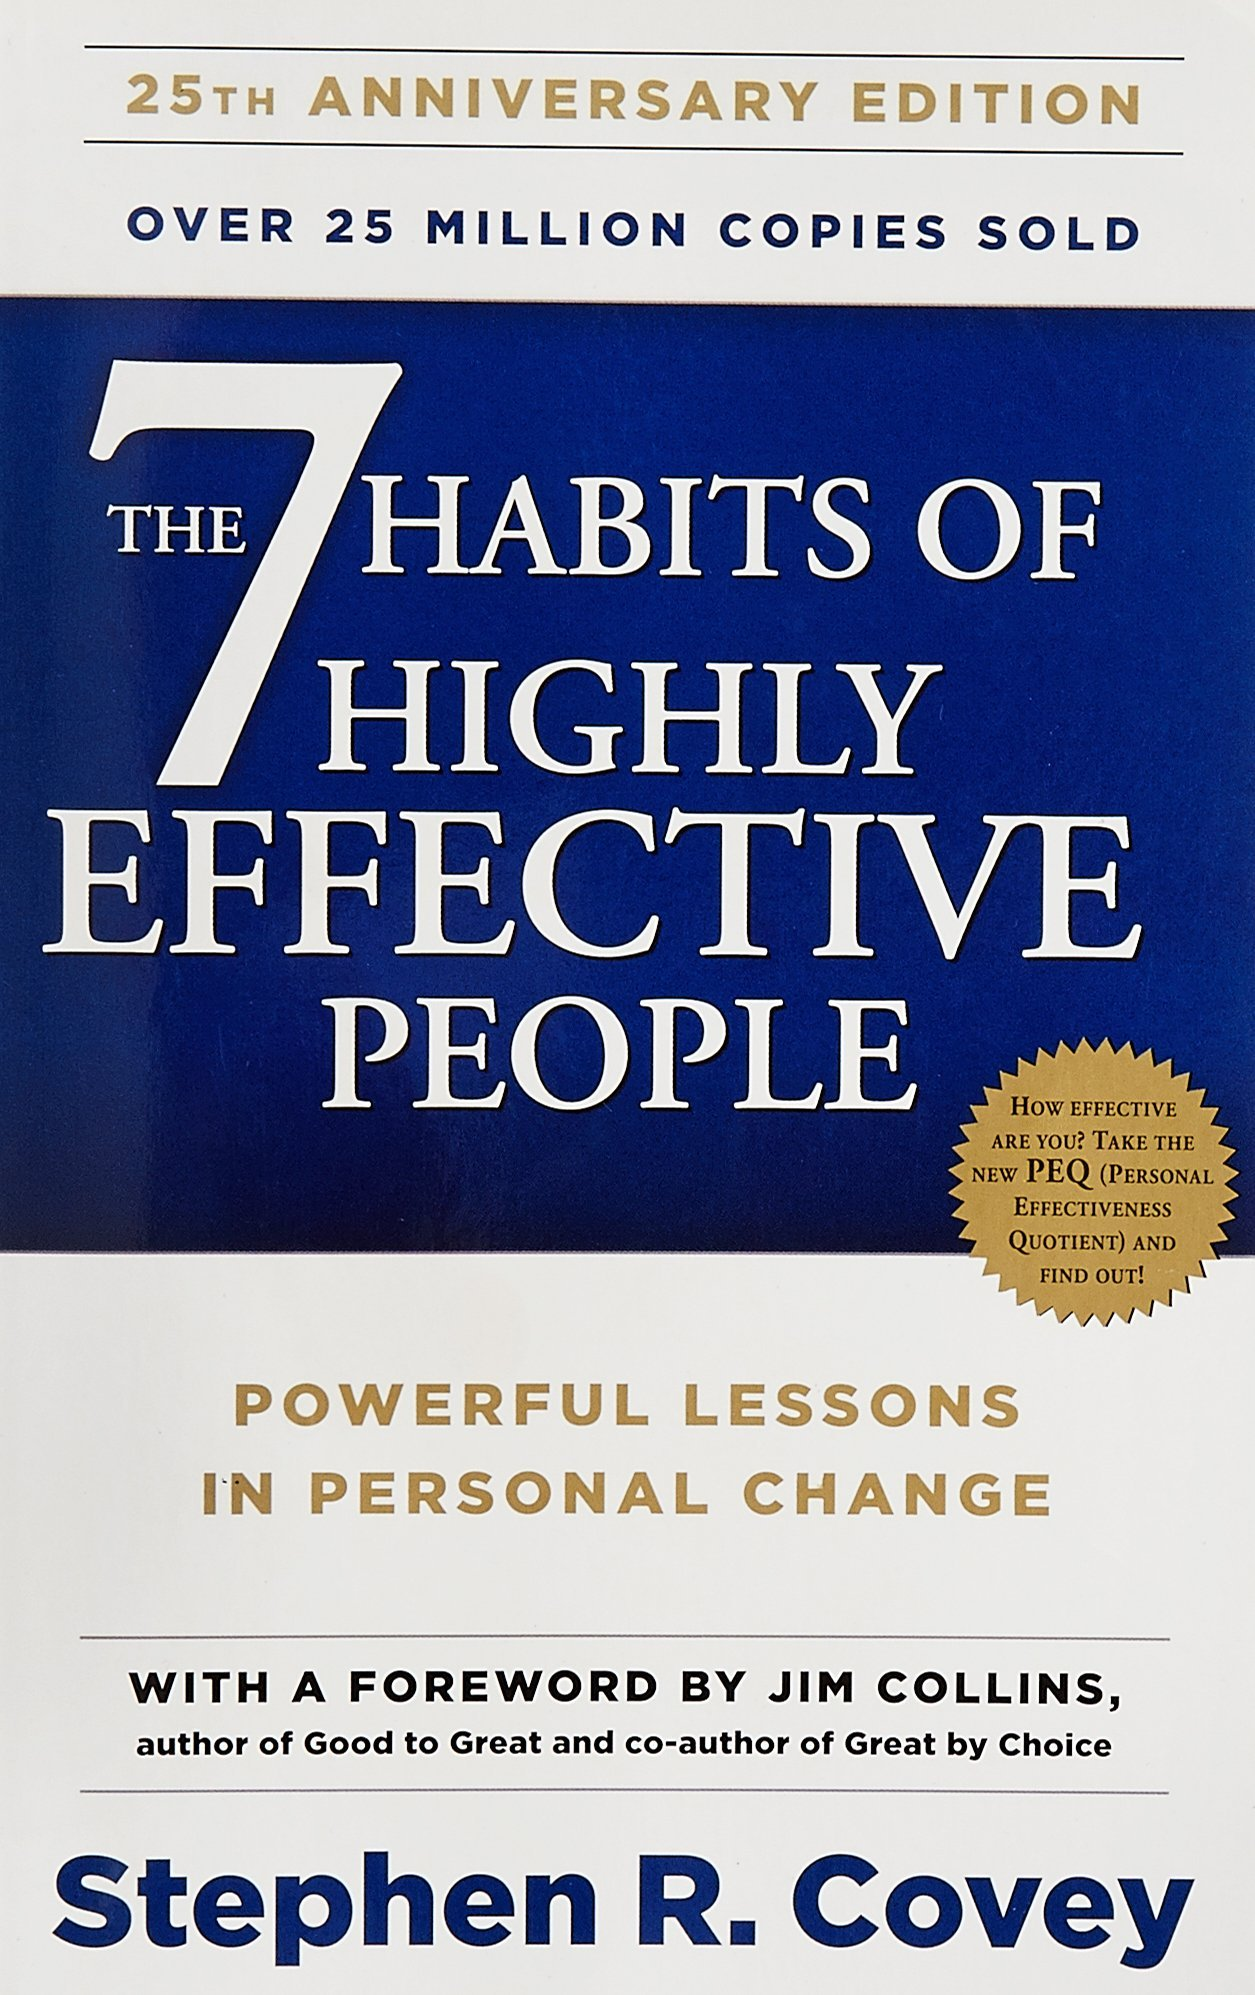 Seven habbits of highly effective People E books Unbound (powerful lesson) – (In Englisher)